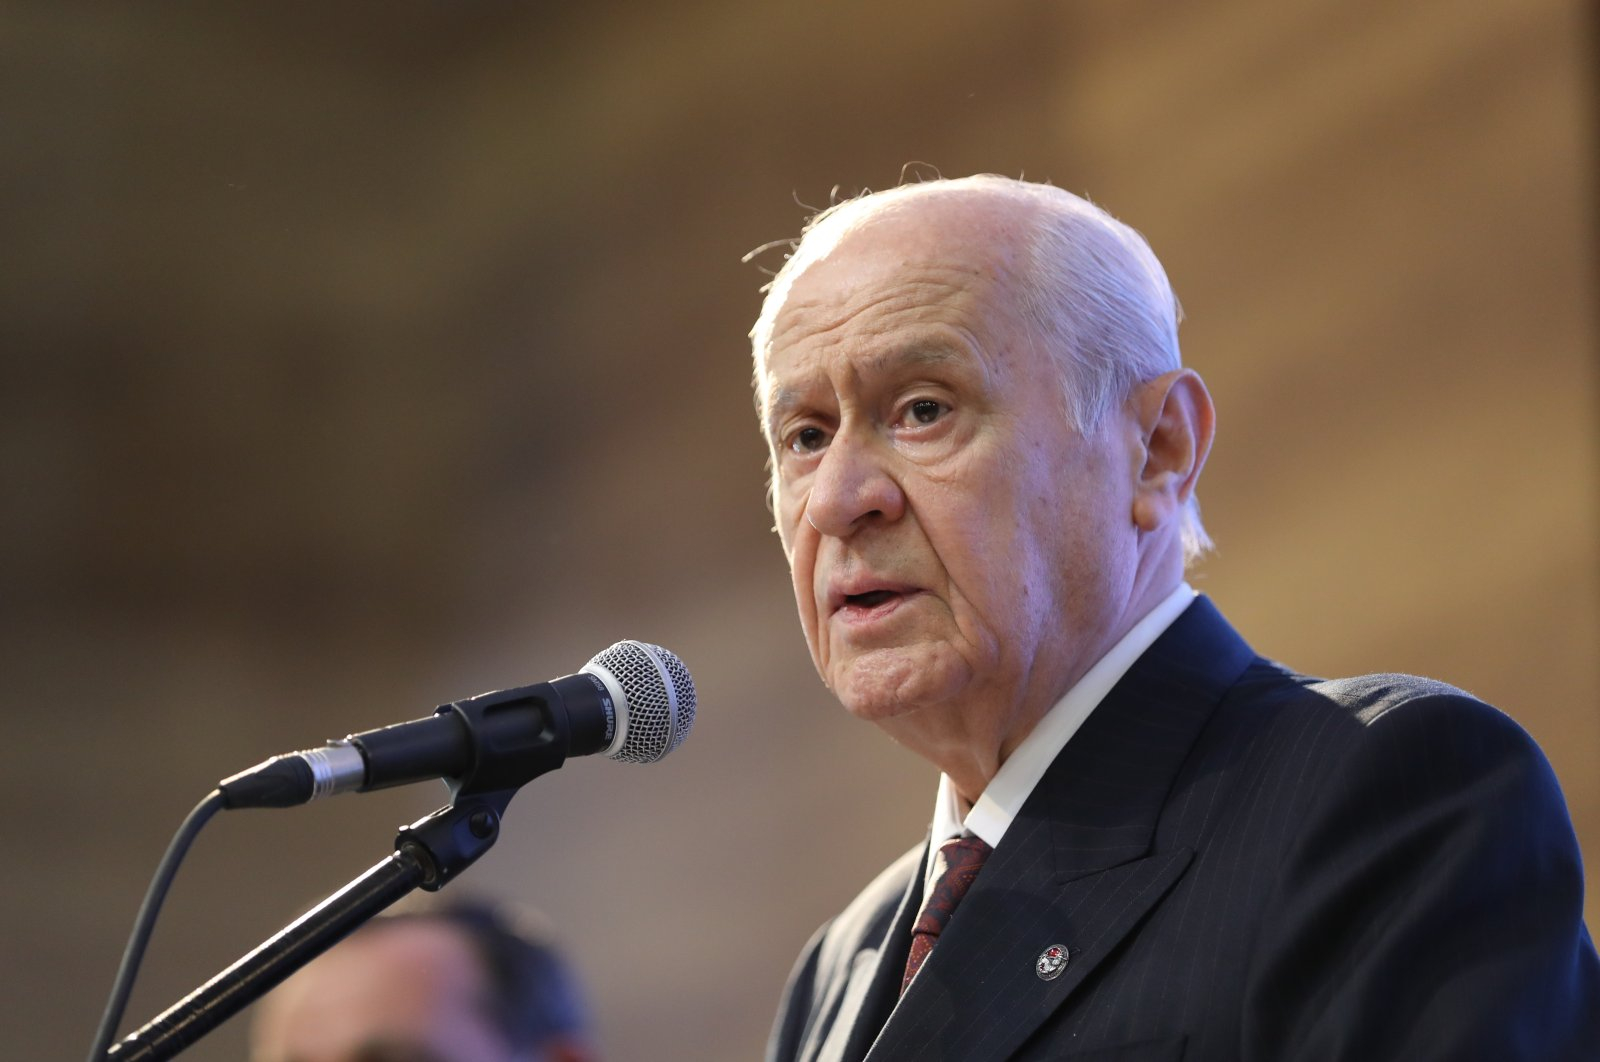 MHP Chairperson Devlet Bahçeli speaks at the inauguration ceremony of a park in Ankara, Turkey, Aug. 29, 2021. (AA File Photo)